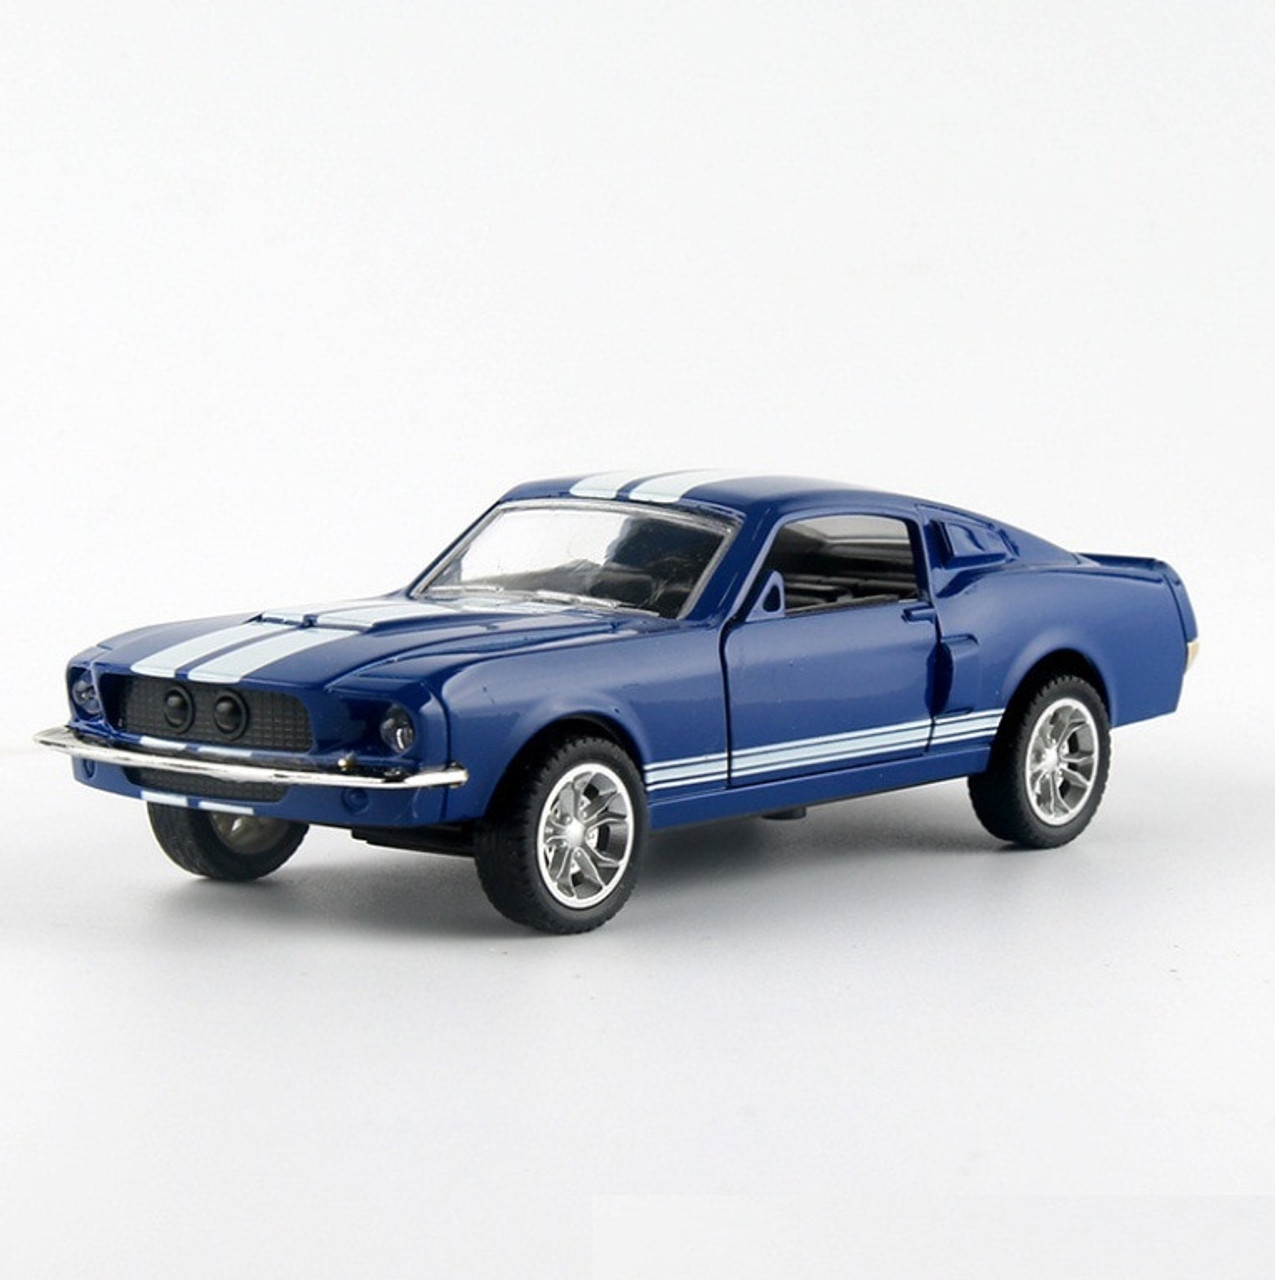 Ford Mustang GT 1967 GT500 Return Alloy Car Toy Model Children's Toy Car  Model Display Gift - OnshopDeals.Com